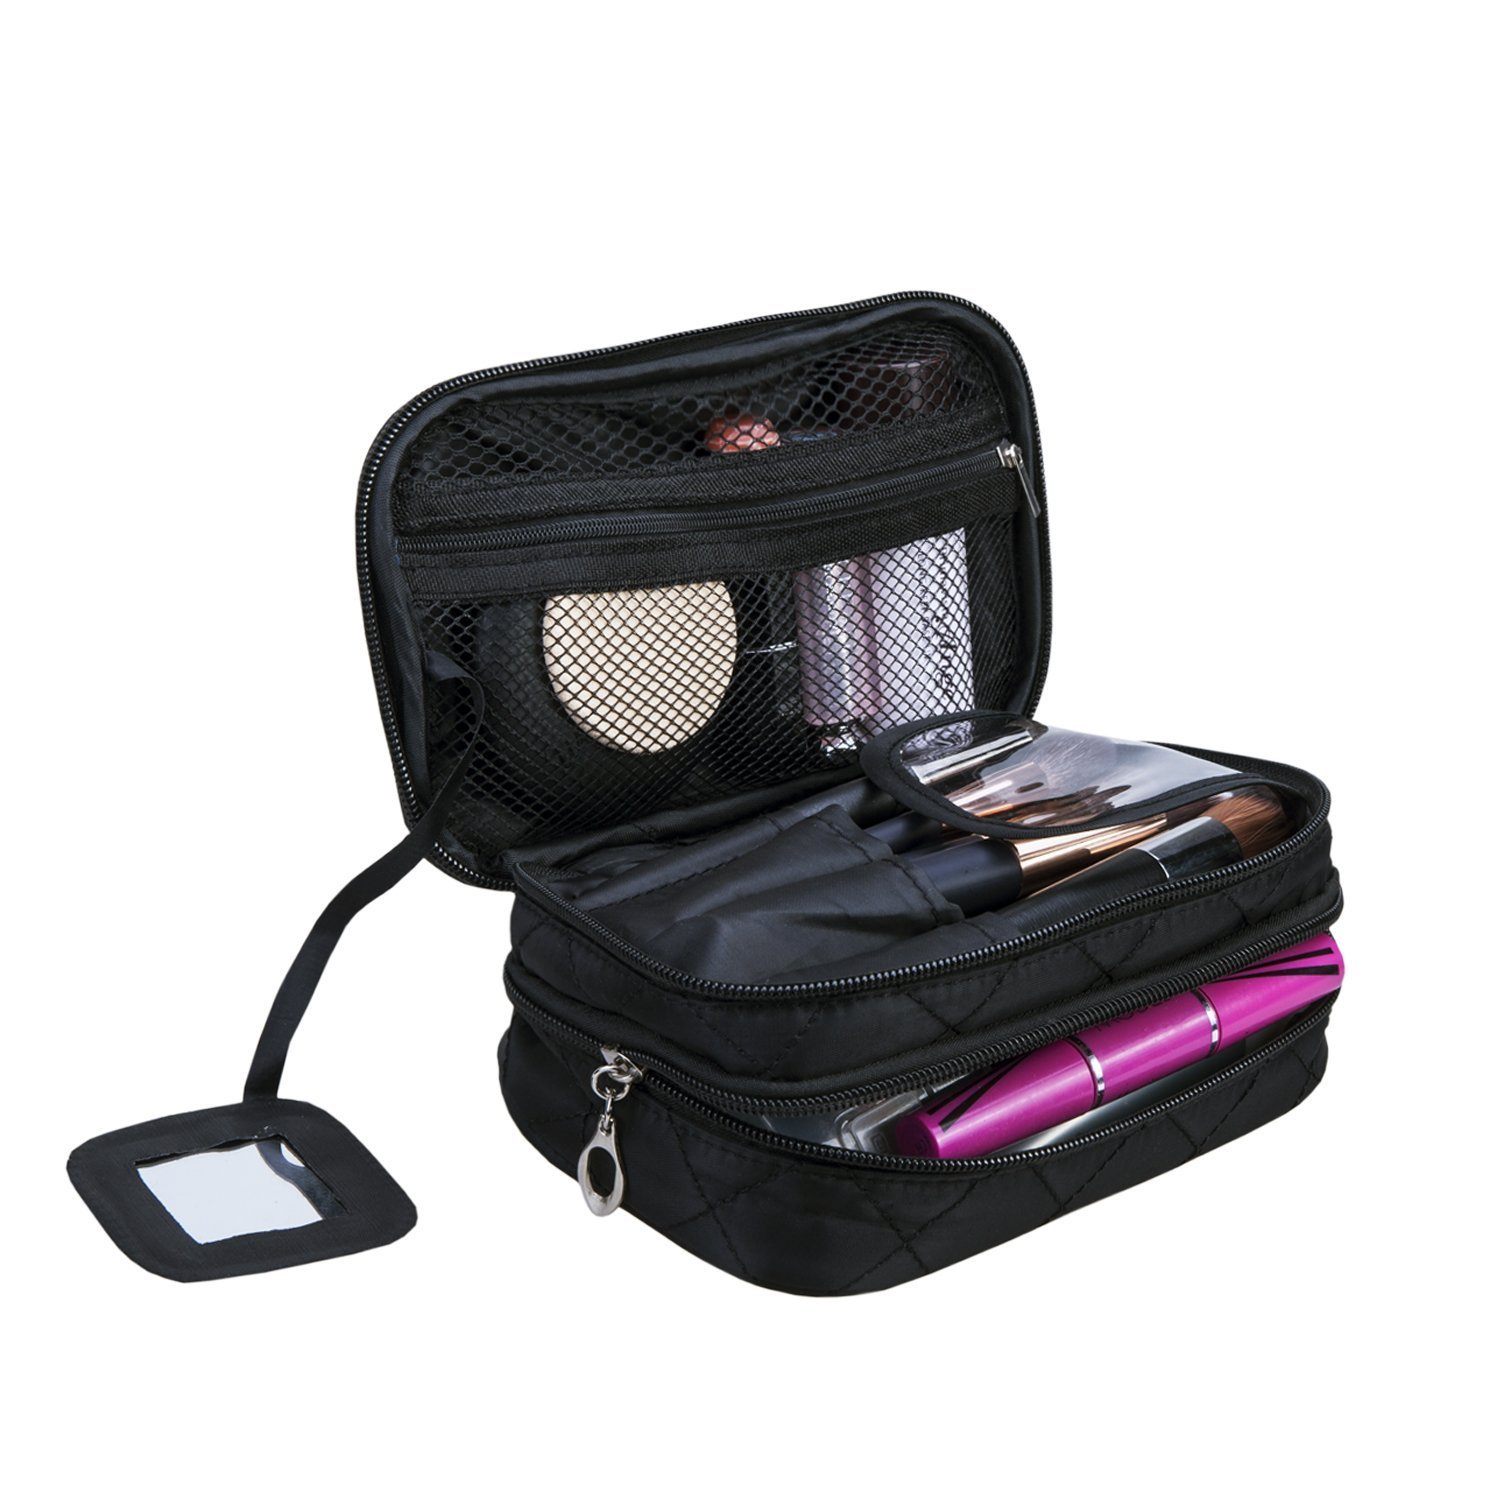 AcmeSoy Portable Makeup Bag Multifunctional 2-Layer Cosmetic Storage Bag Professional Cosmetic Organizer for Travel Home,black